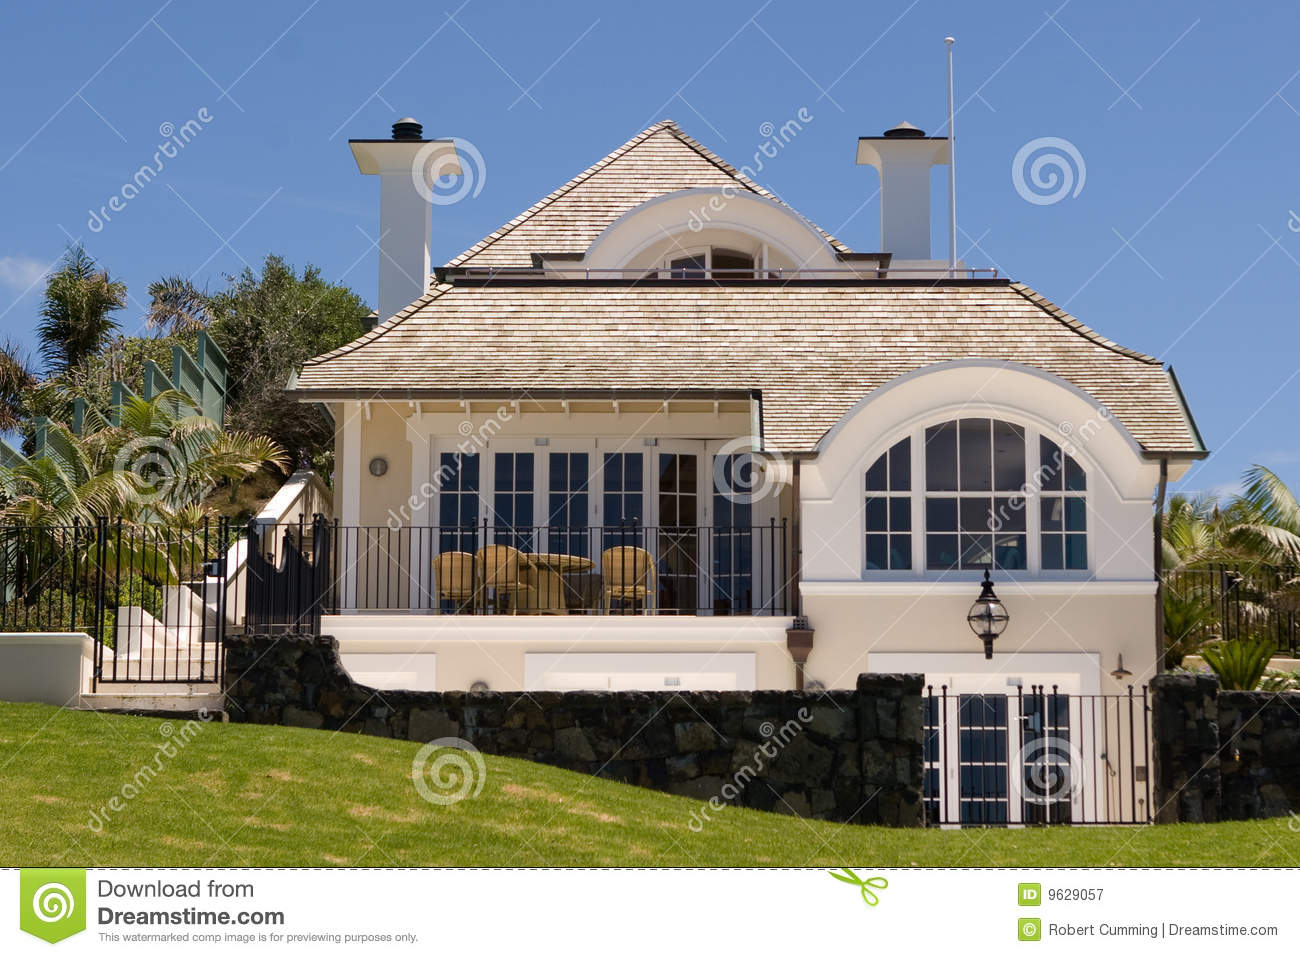 Luxury home royalty free stock photography image 9629057 for Free luxury home images